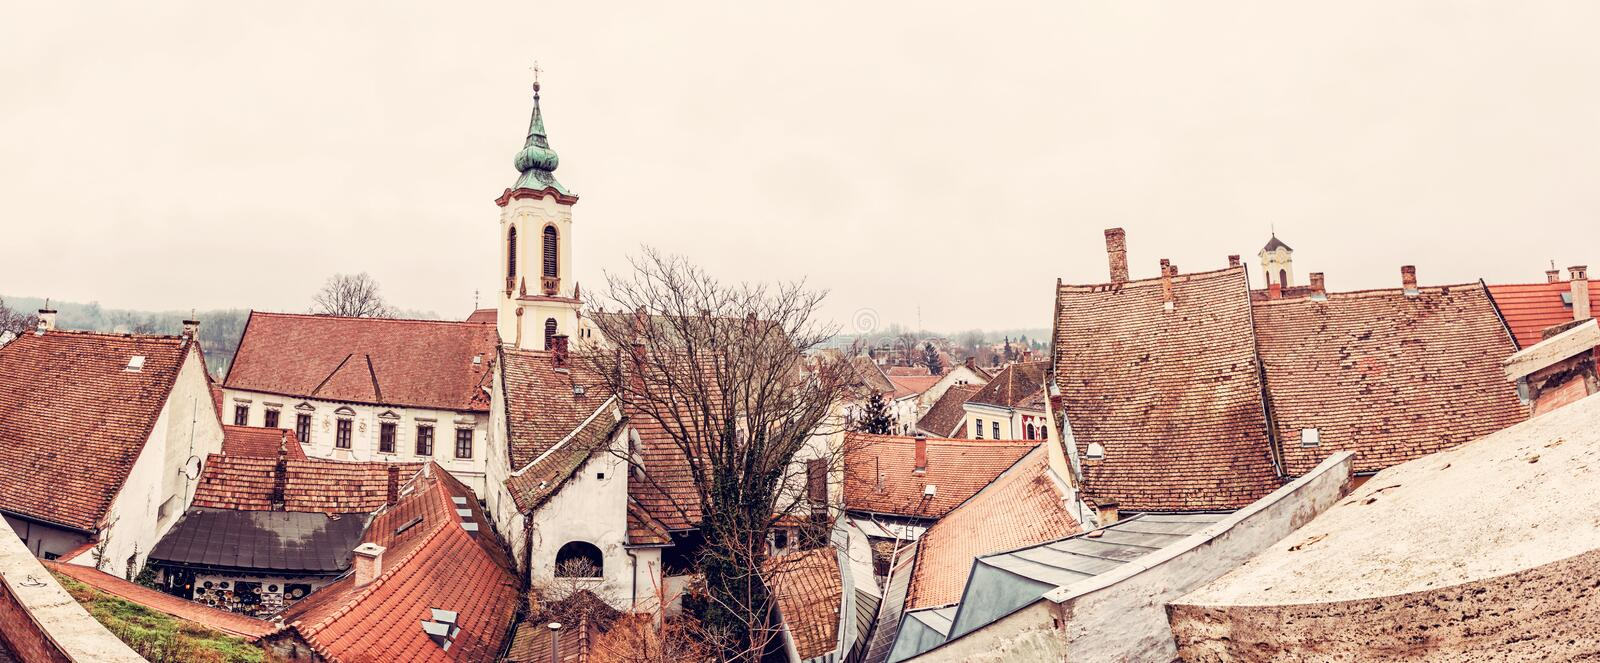 Annunciation church and red roofs of old houses, Szentendre. Hungary. Religious architecture. Panoramic scene. Place of worship. Red photo filter royalty free stock photo